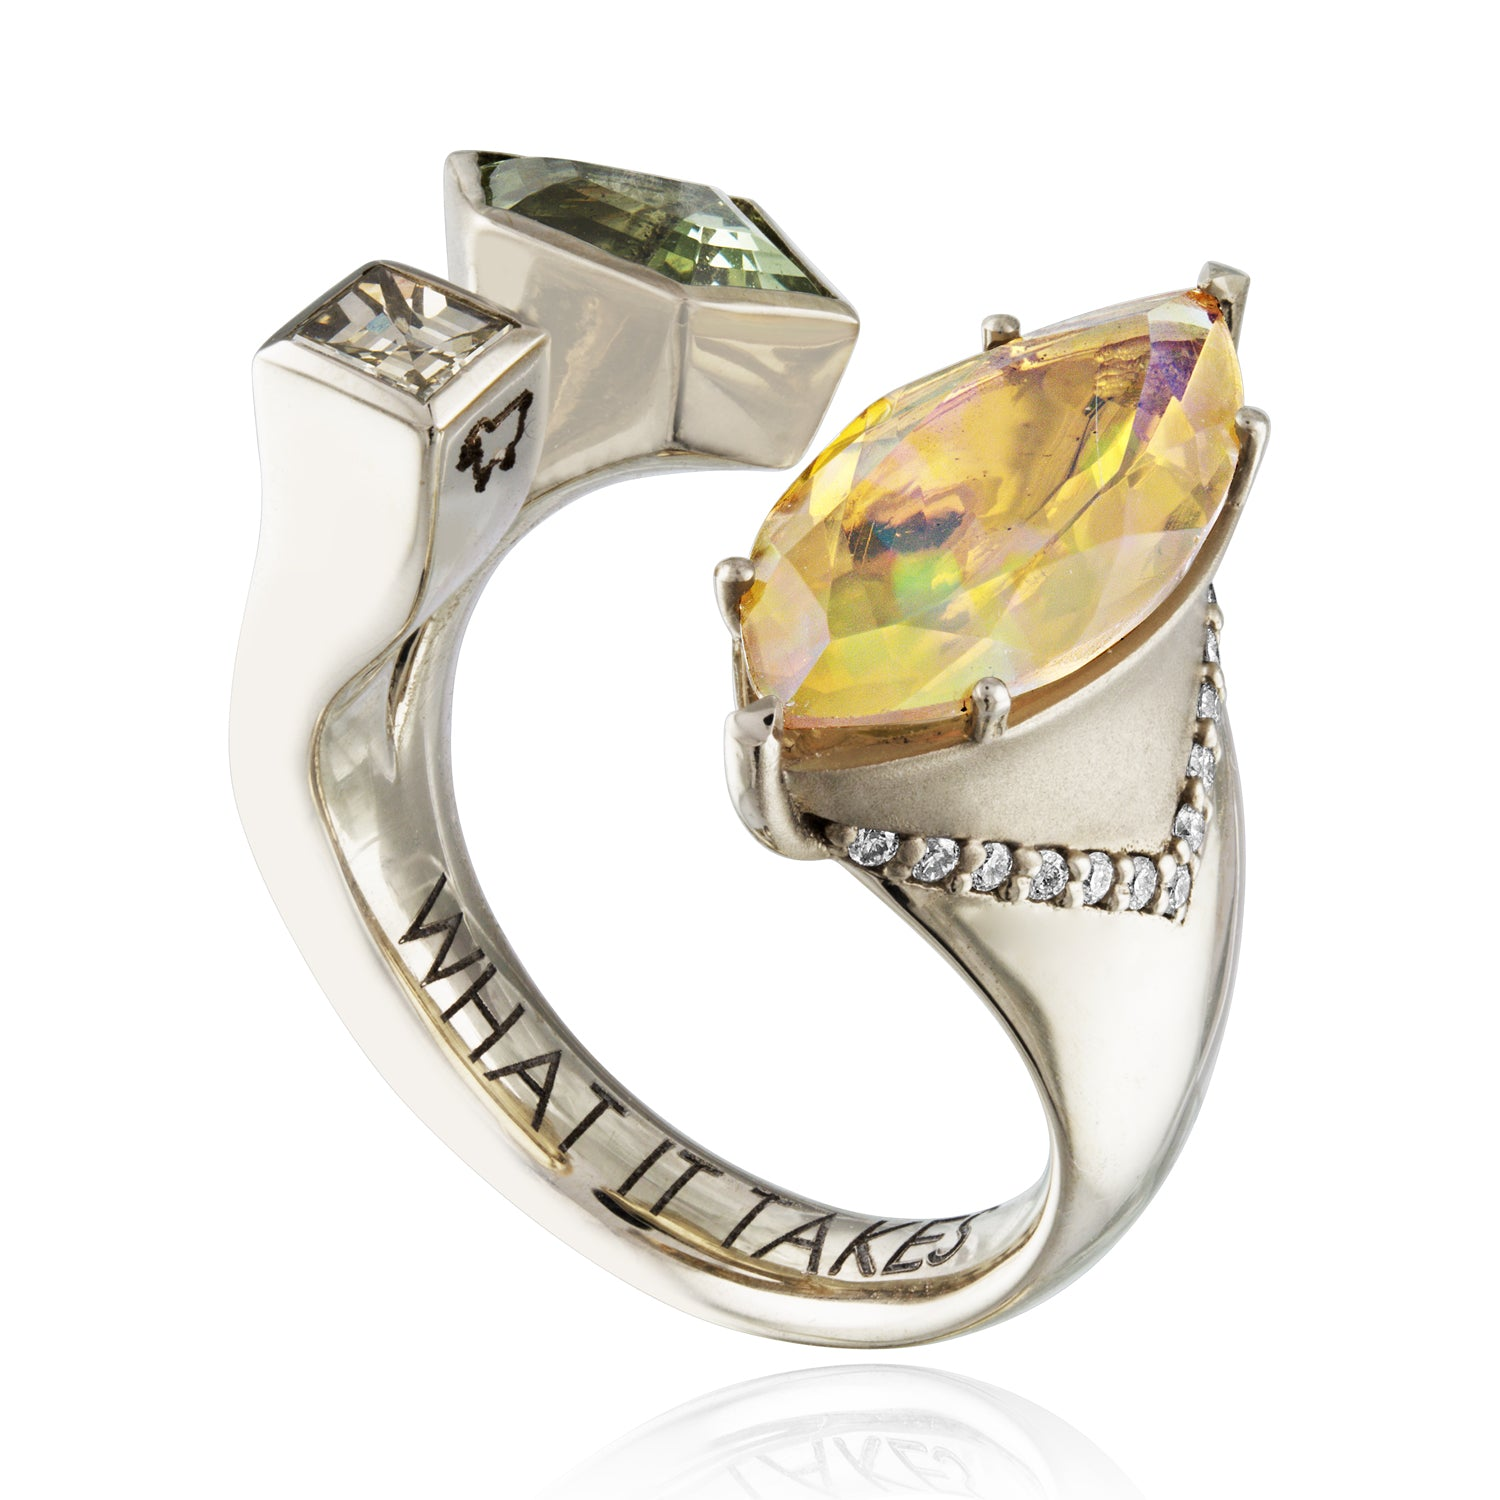 Opal and gemstone ring with diamonds